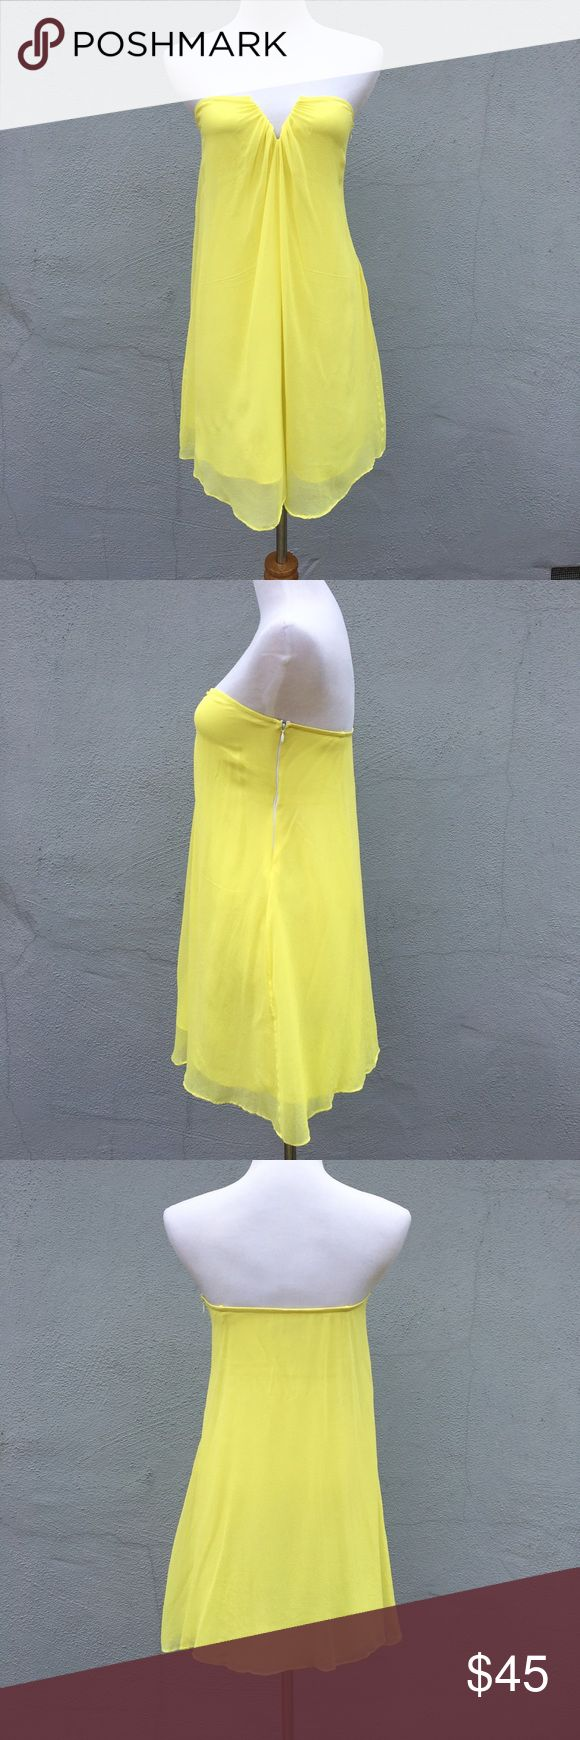 Elizabeth and James Silk Strapless Mini Dress SM Elizabeth and James Silk Strapless Mini Dress SIze Small. Bright yellow with a white side zipper, and deep v. Has some flaws throughout (small snags, please see up-close photo), and the V has been mended with thread (not visible when wearing). This also has been washed so it has a slight stiffness to it but is still very soft. Has built in straps for hanging, but the dress is meant to be worn strapless. Thank you for stopping by. Elizabeth and…